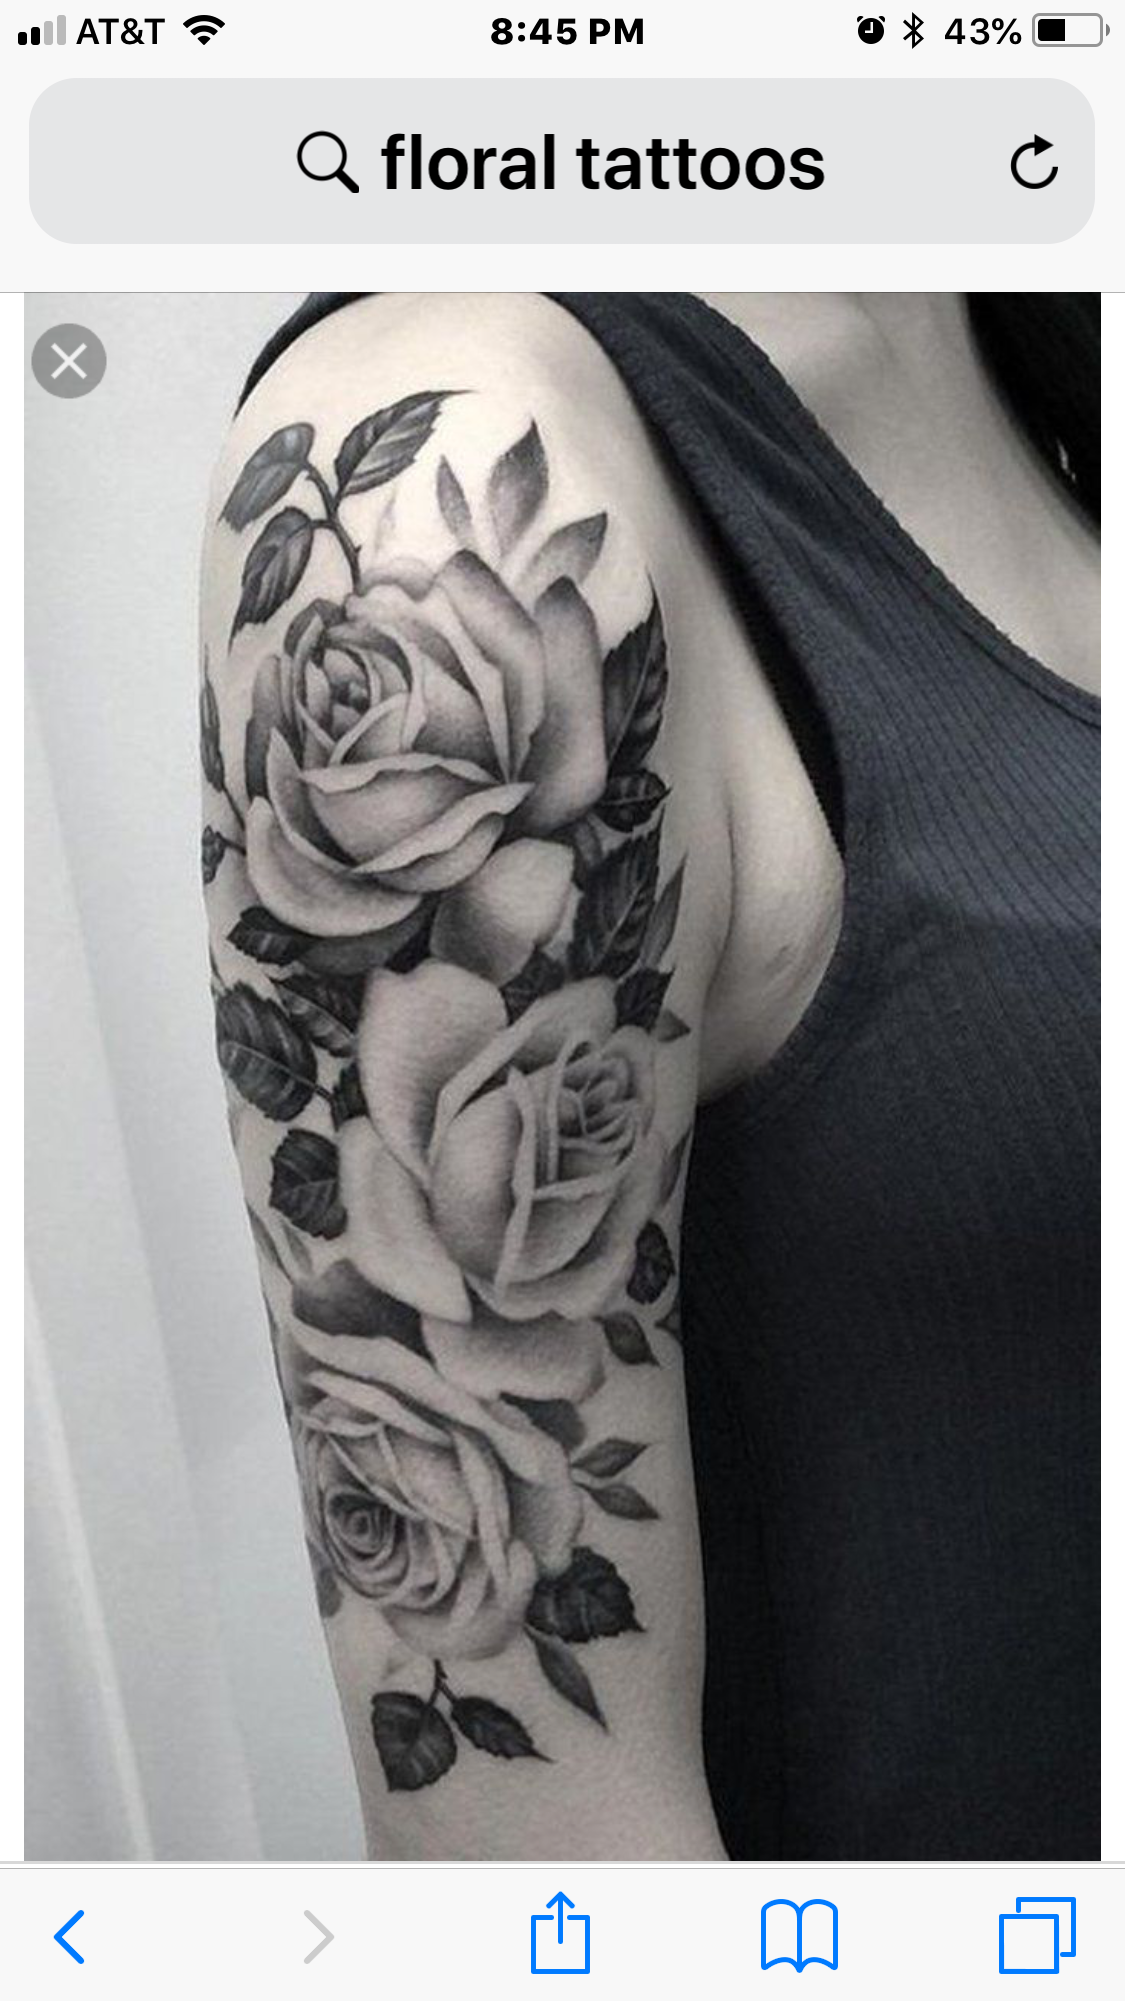 Pin By Georgia Macdonald On Tattoos I D Love To Get But Never Will White Rose Tattoos Girls With Sleeve Tattoos Arm Sleeve Tattoos For Women